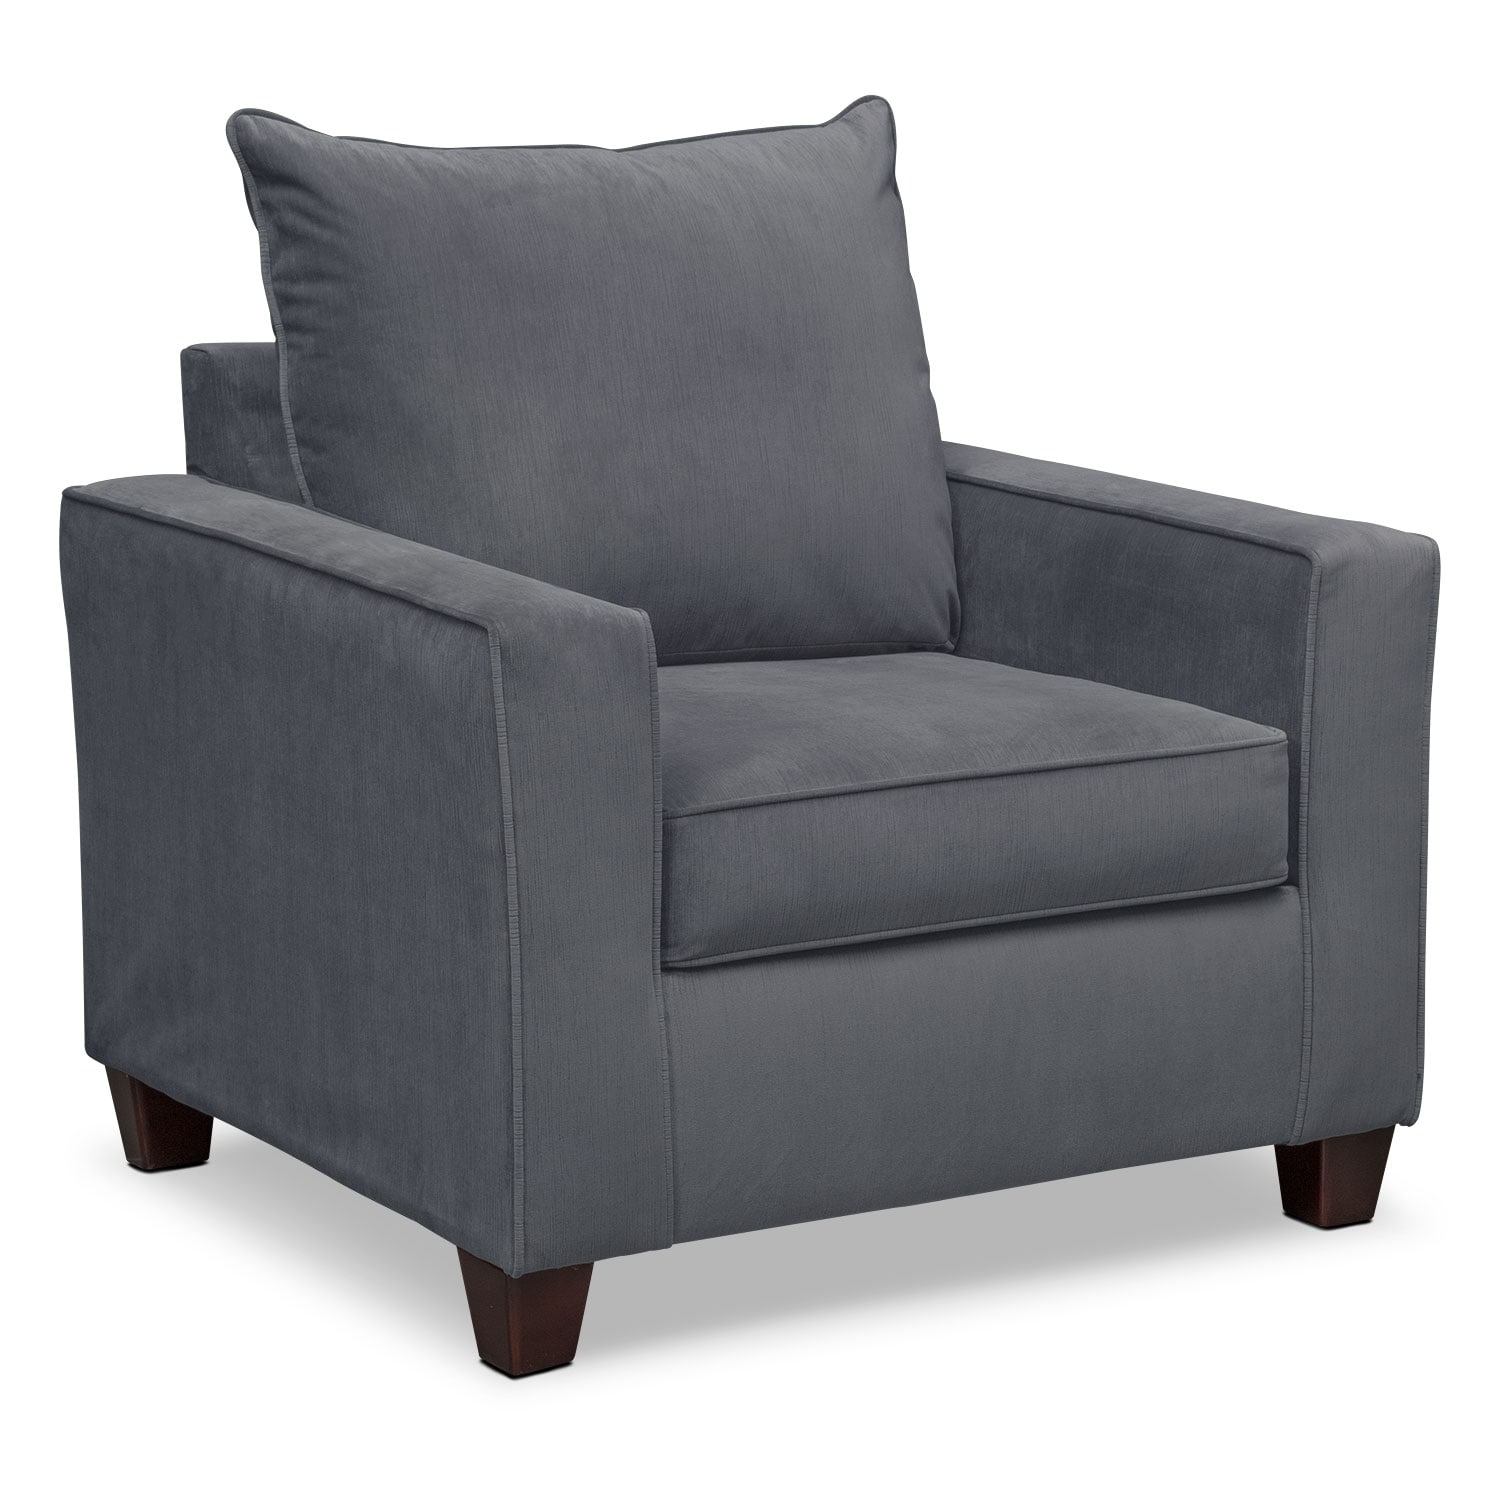 Living Room Furniture - Bryden Chair - Slate